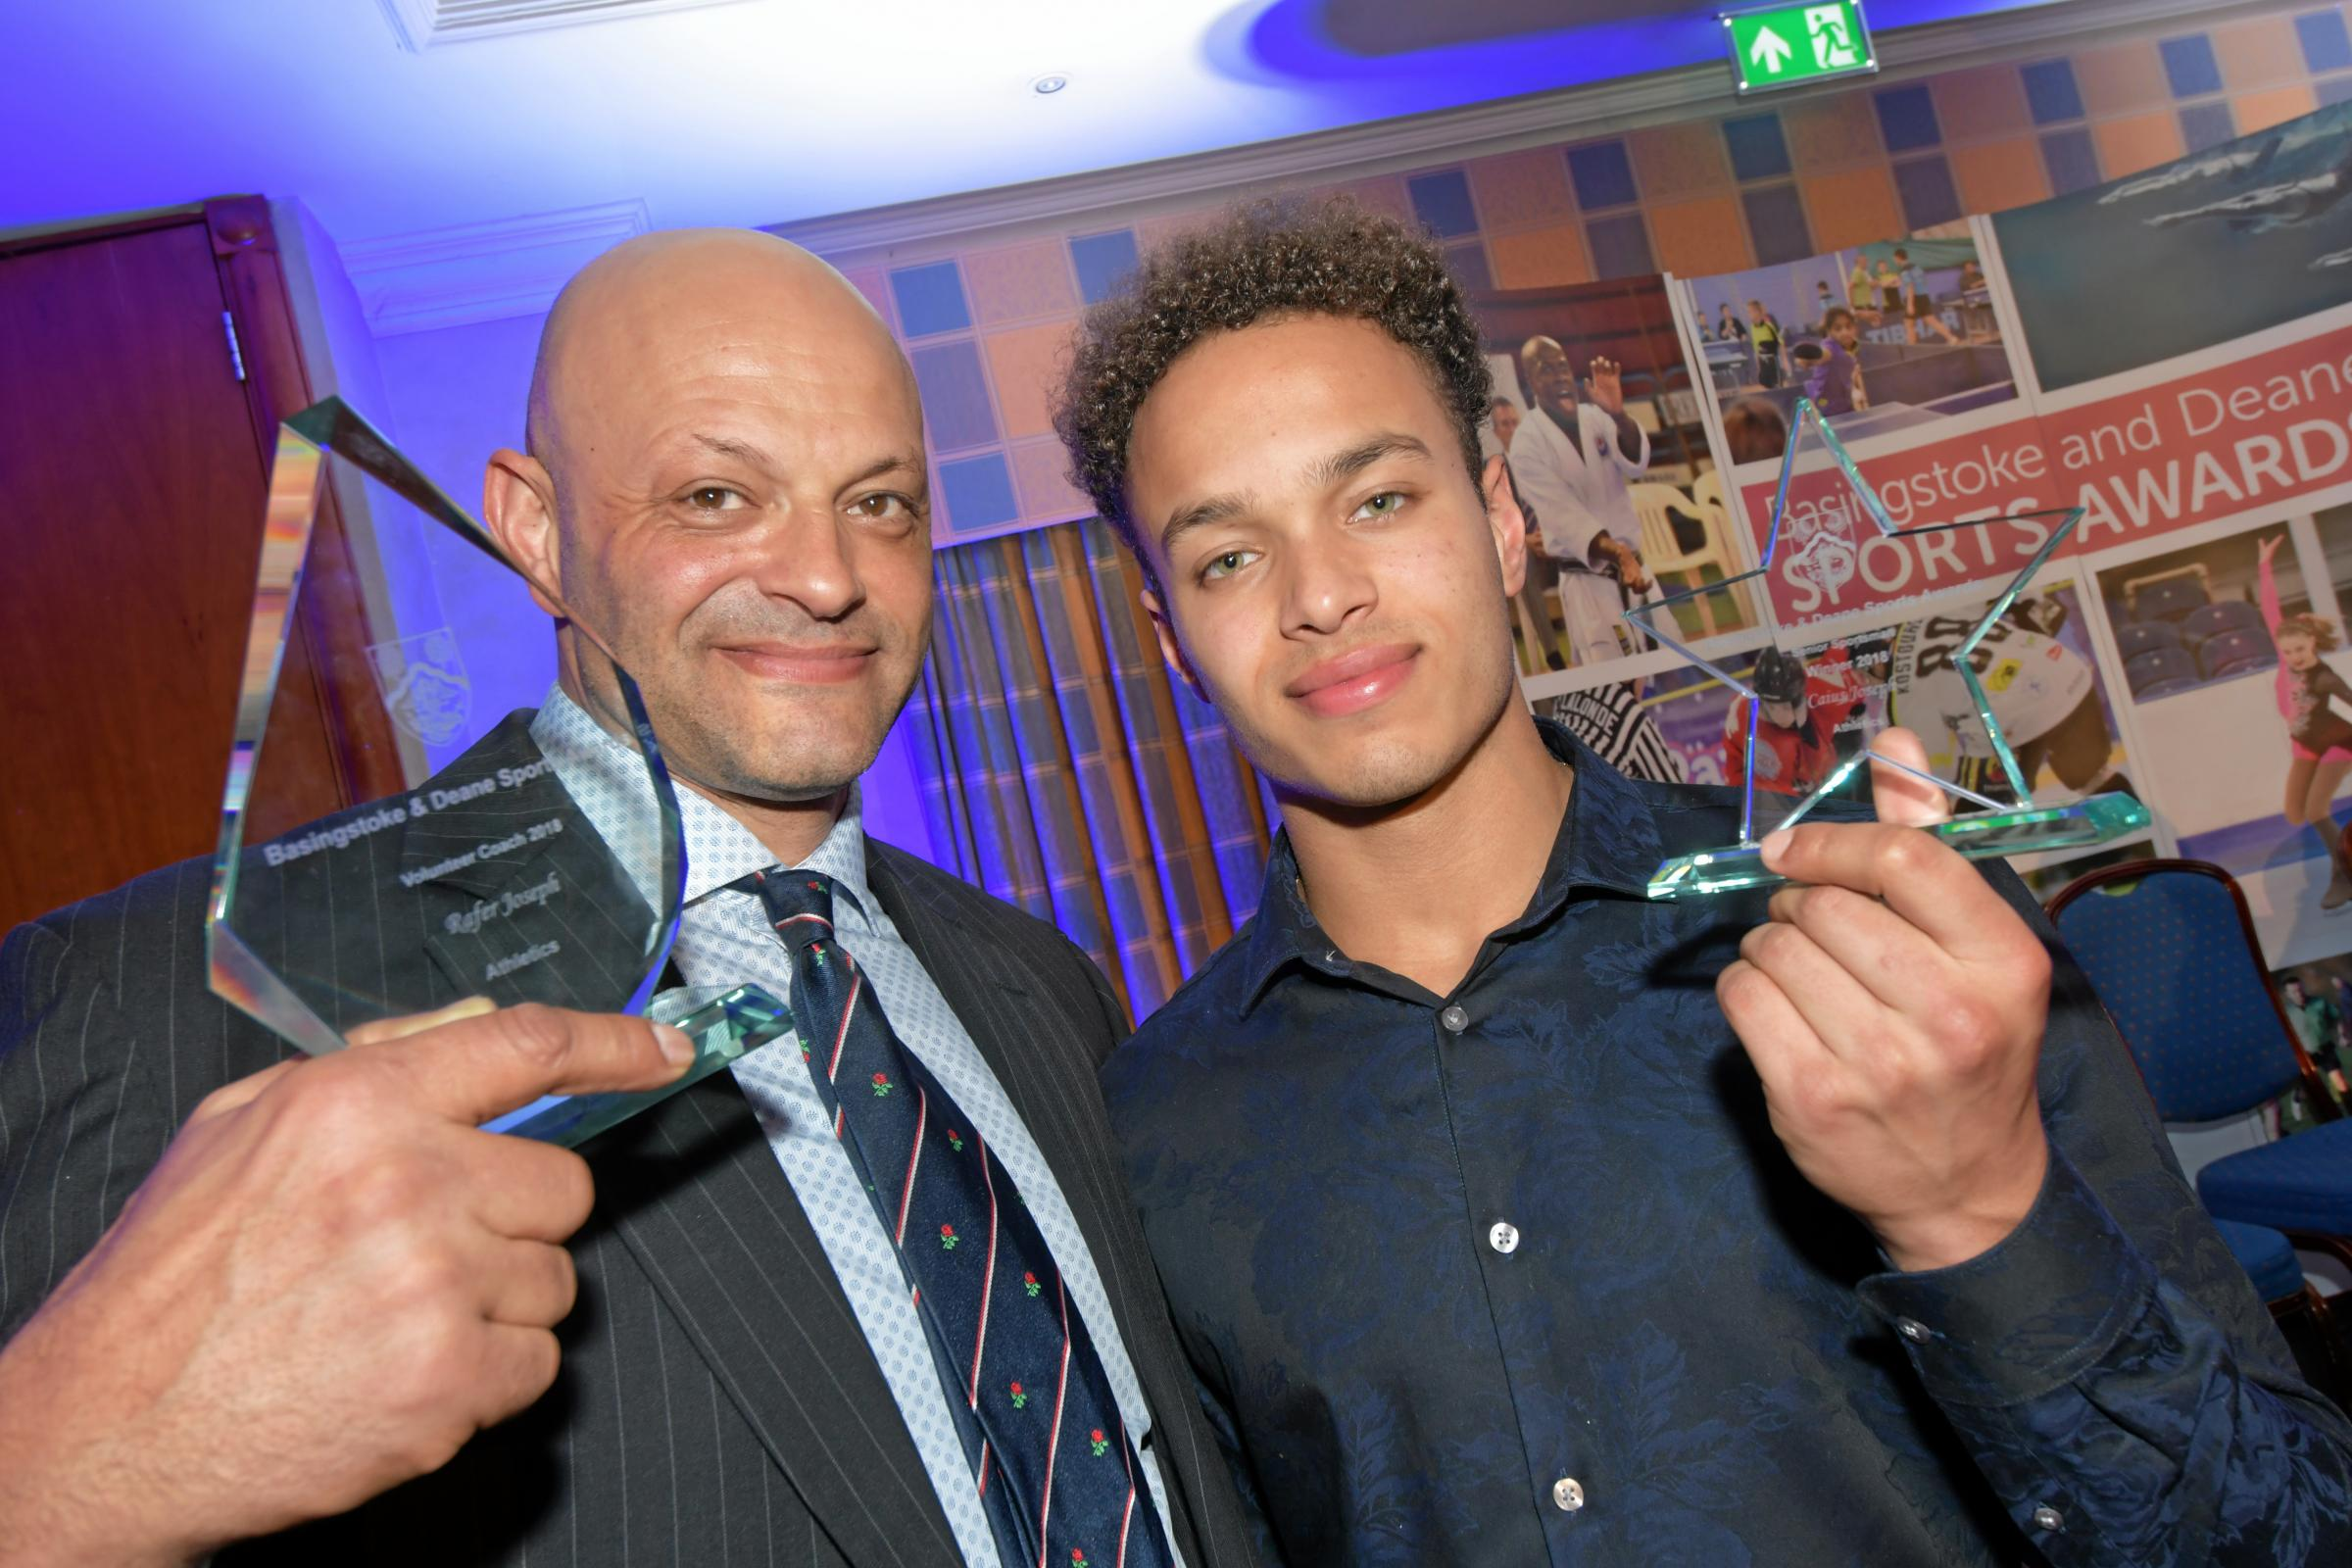 Basingstoke & Deane Sports Awards 2019 at the Apollo Hotel, Basingstoke..(L-R): Rafer Joseph and Caius Joseph celebrate their awards....Photograph By: Sean Dillow..www.TheBigCheesePhotography.co.uk.